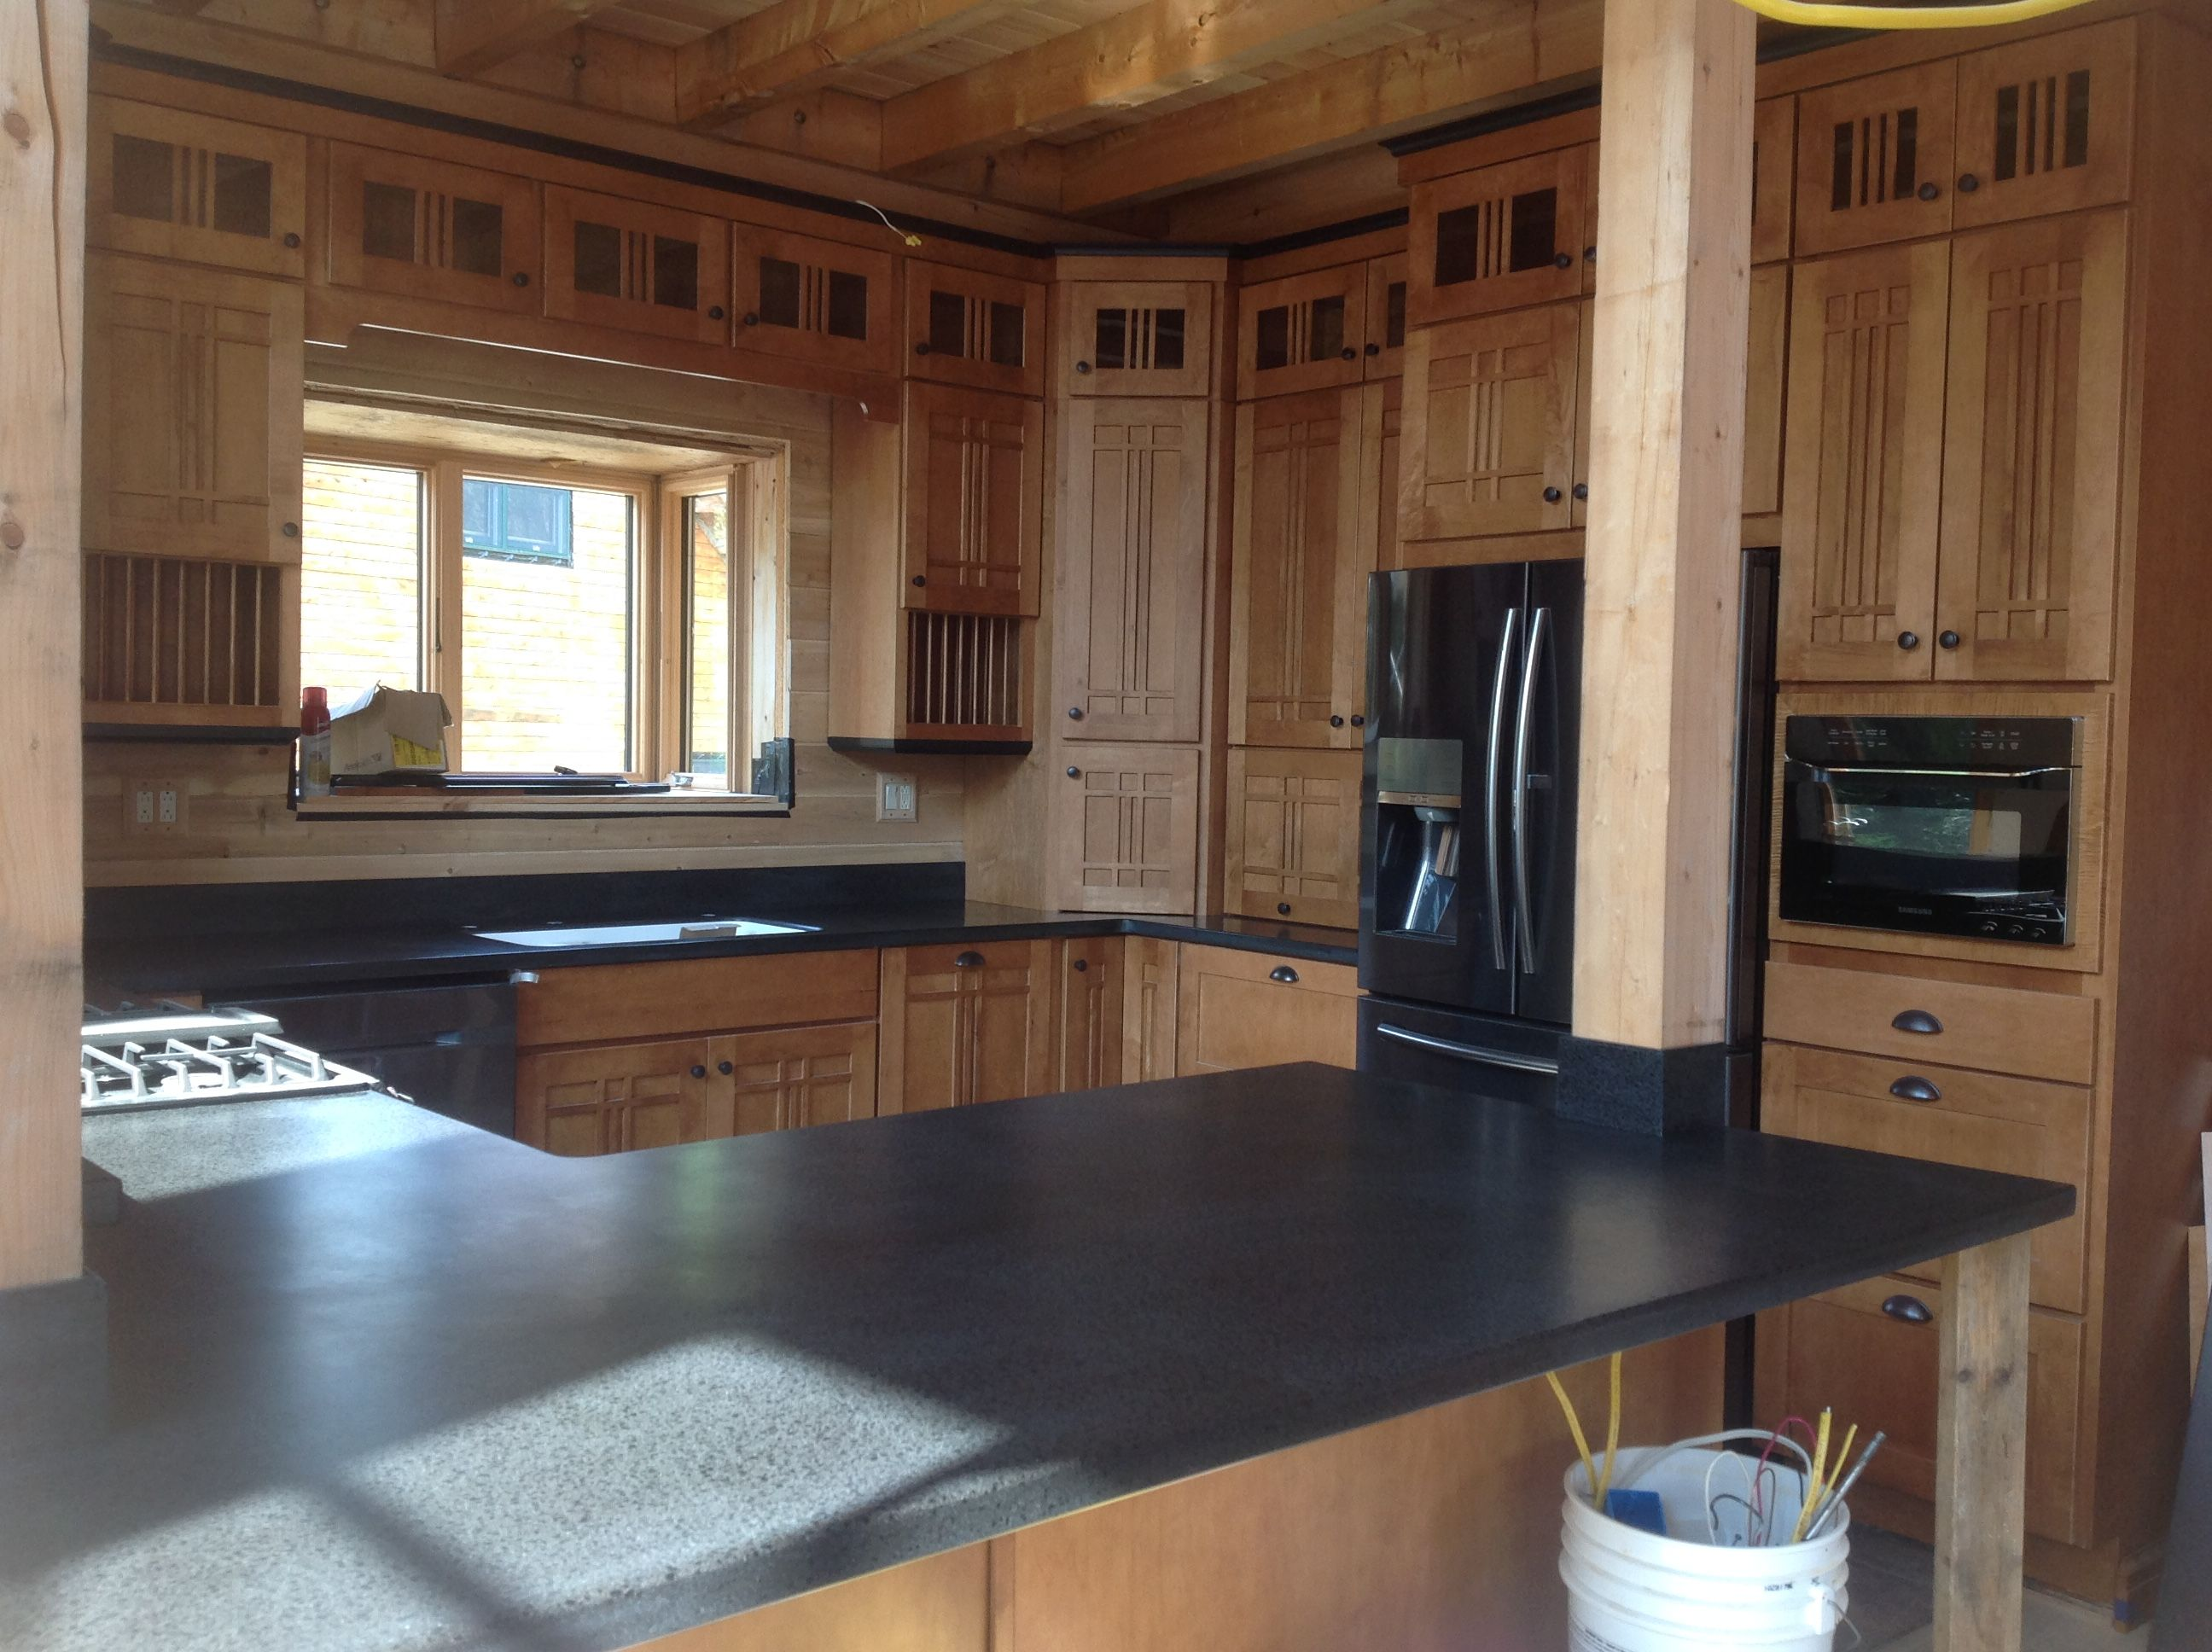 Merveilleux Schuler Maple Kitchen Cabinets In Artisan Door Style With Chestnut Stain In  Log Home